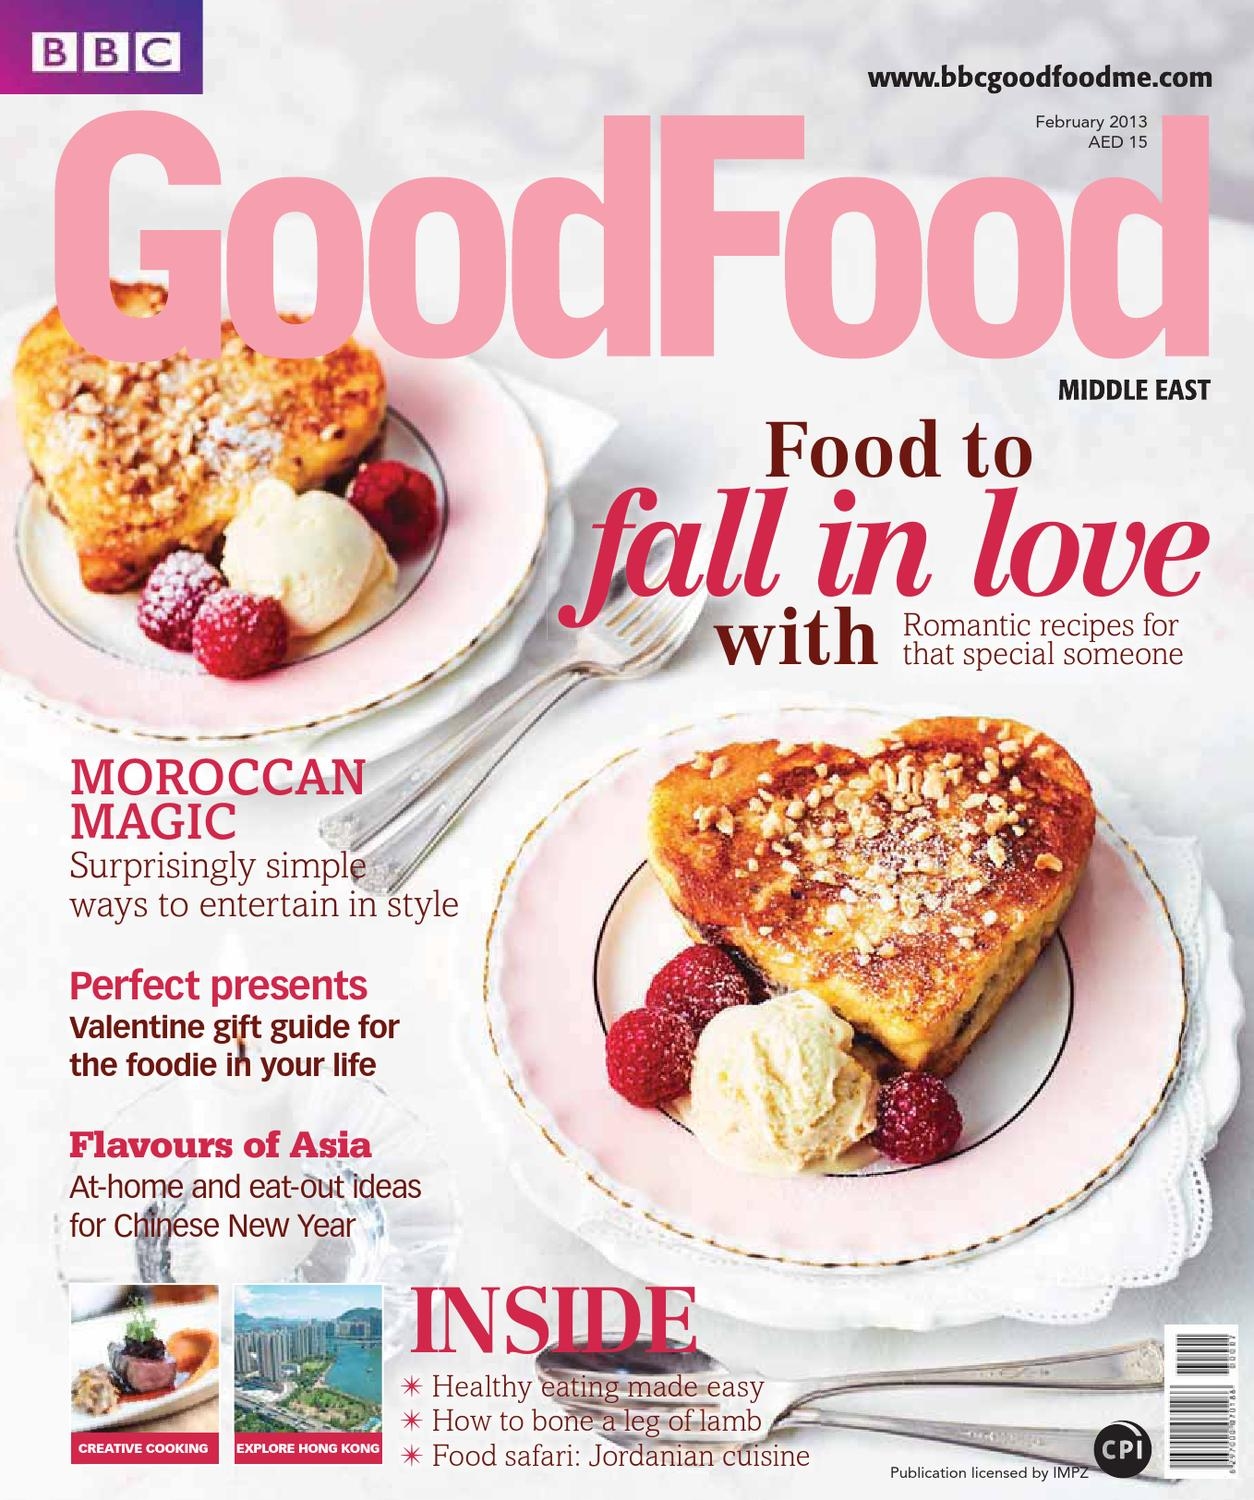 Bbc good food middle east magazine february 2013 by bbc good food bbc good food middle east magazine february 2013 by bbc good food me issuu forumfinder Choice Image